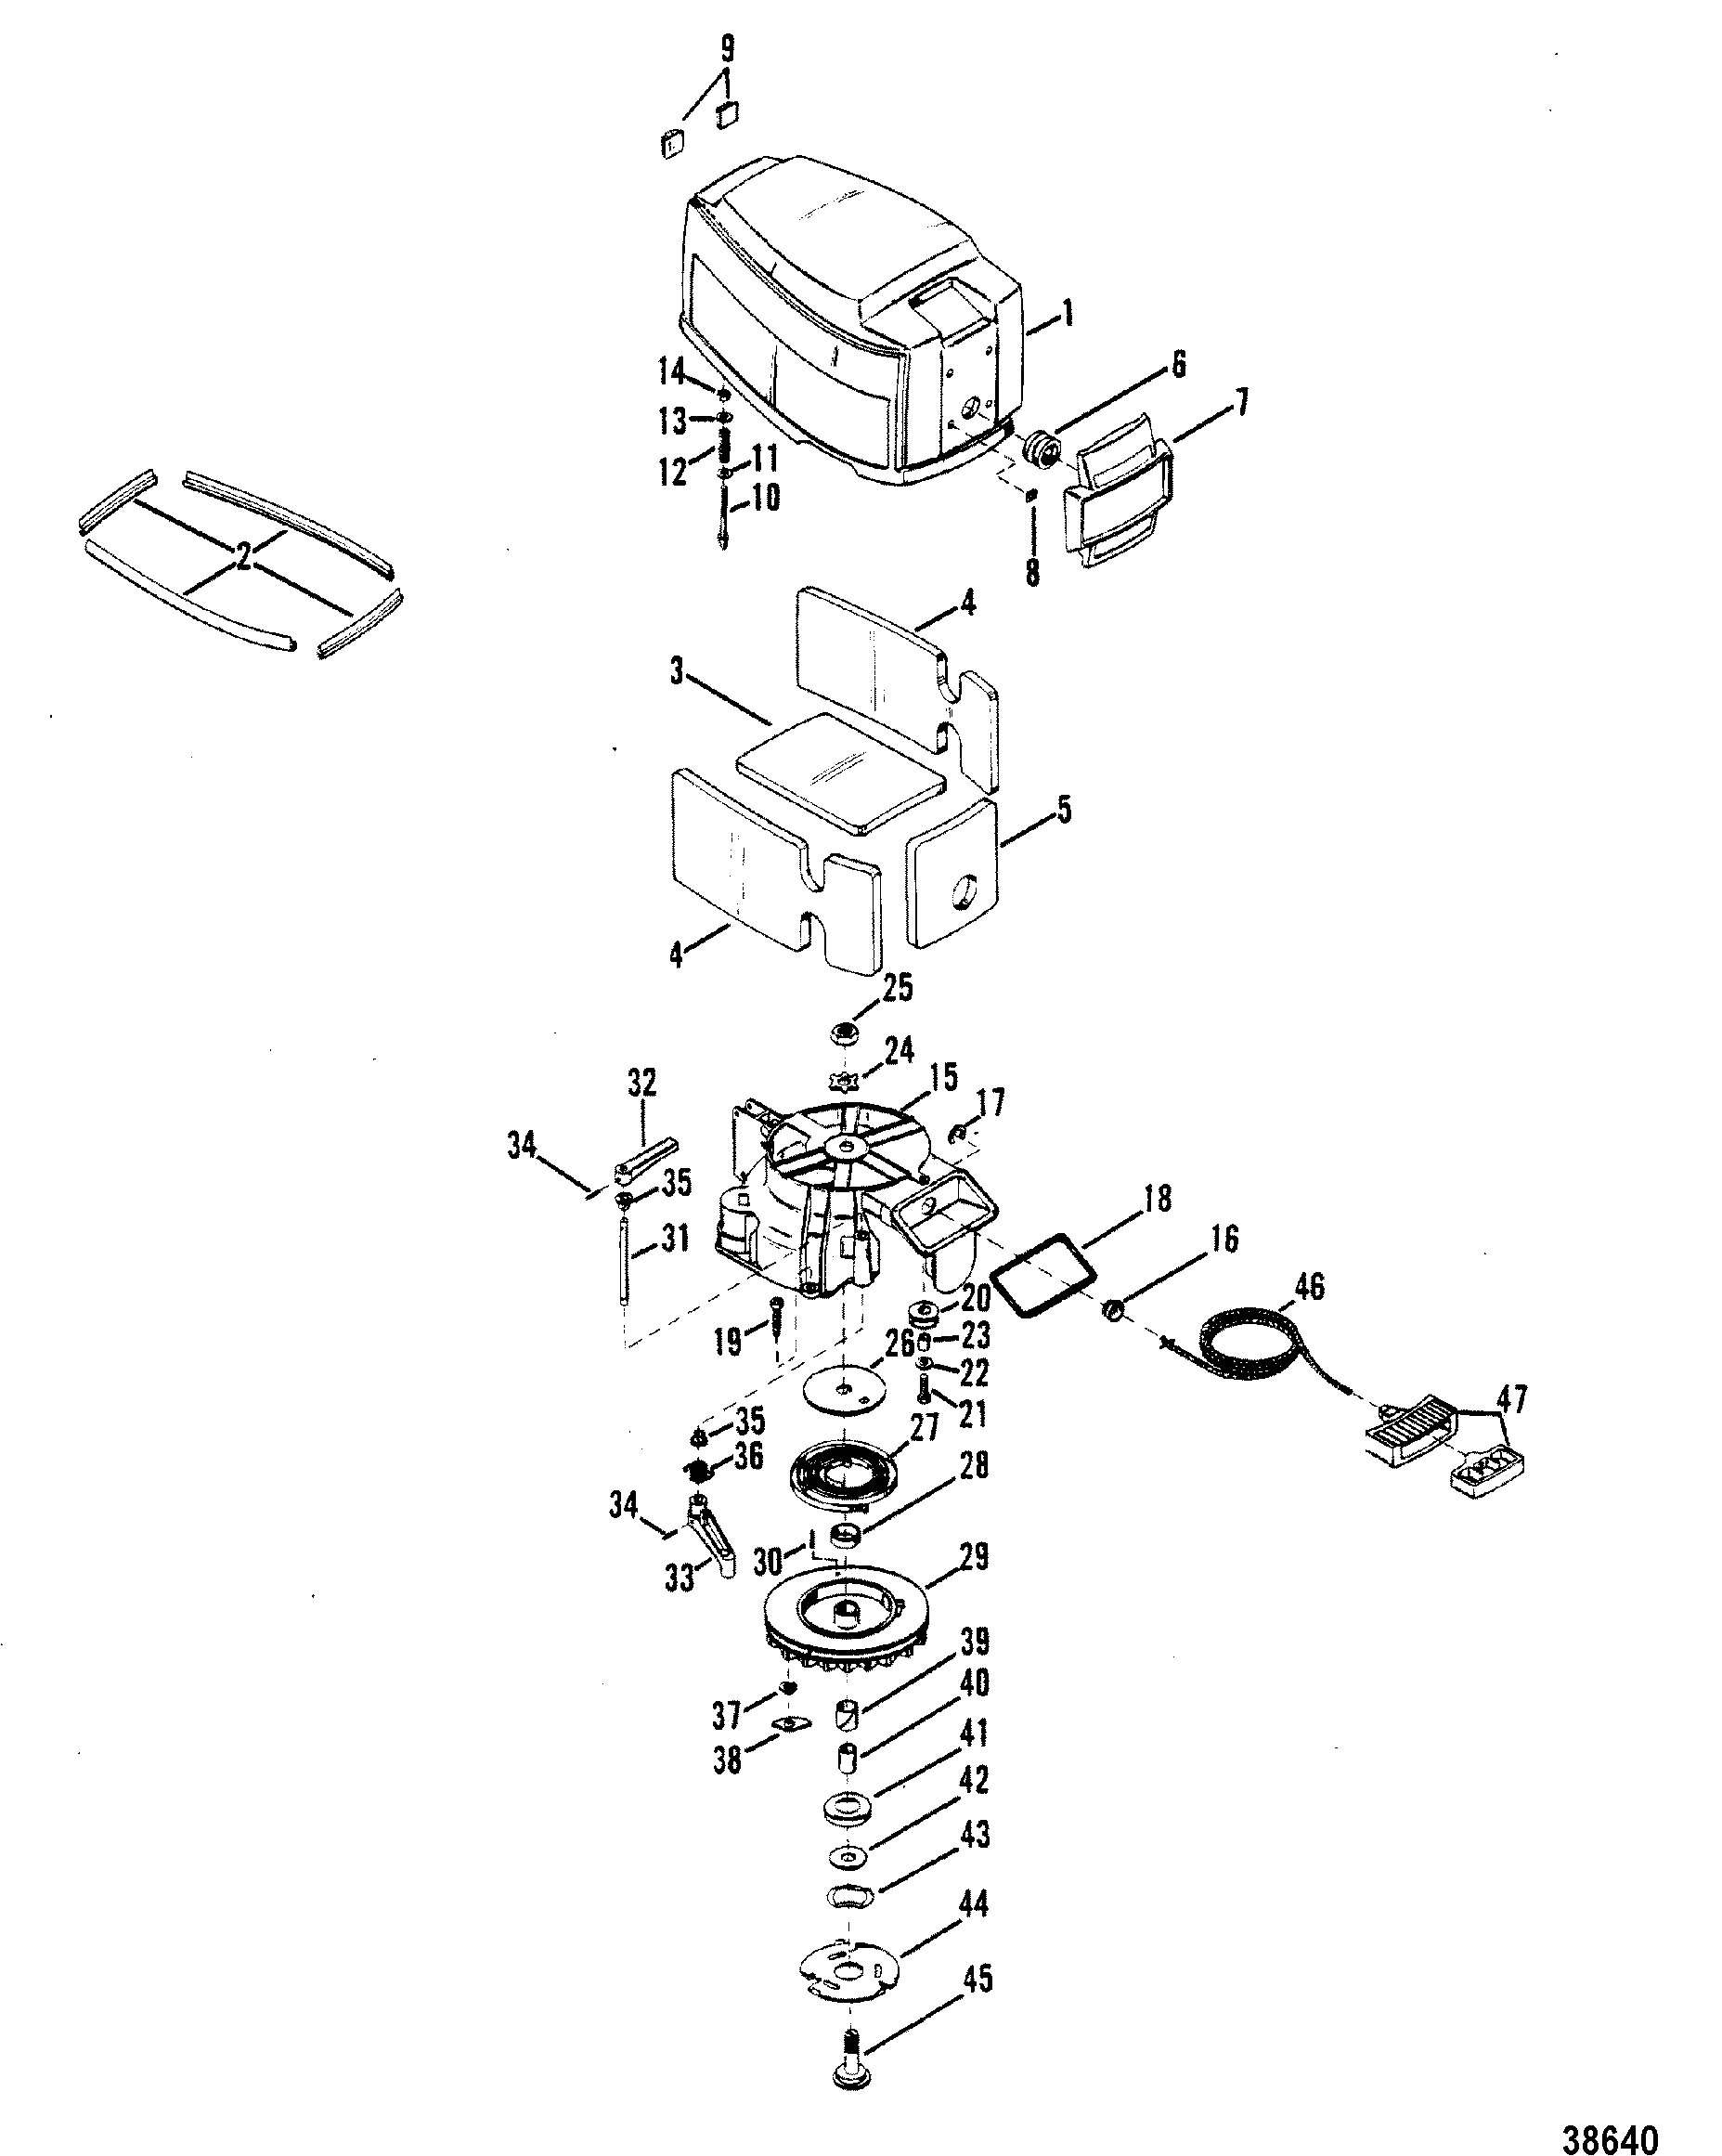 Mercury 98 Outboard Motor Diagram Electrical Wiring Diagrams 402 9 8 5206550 Up Top Cowl And Starter Control